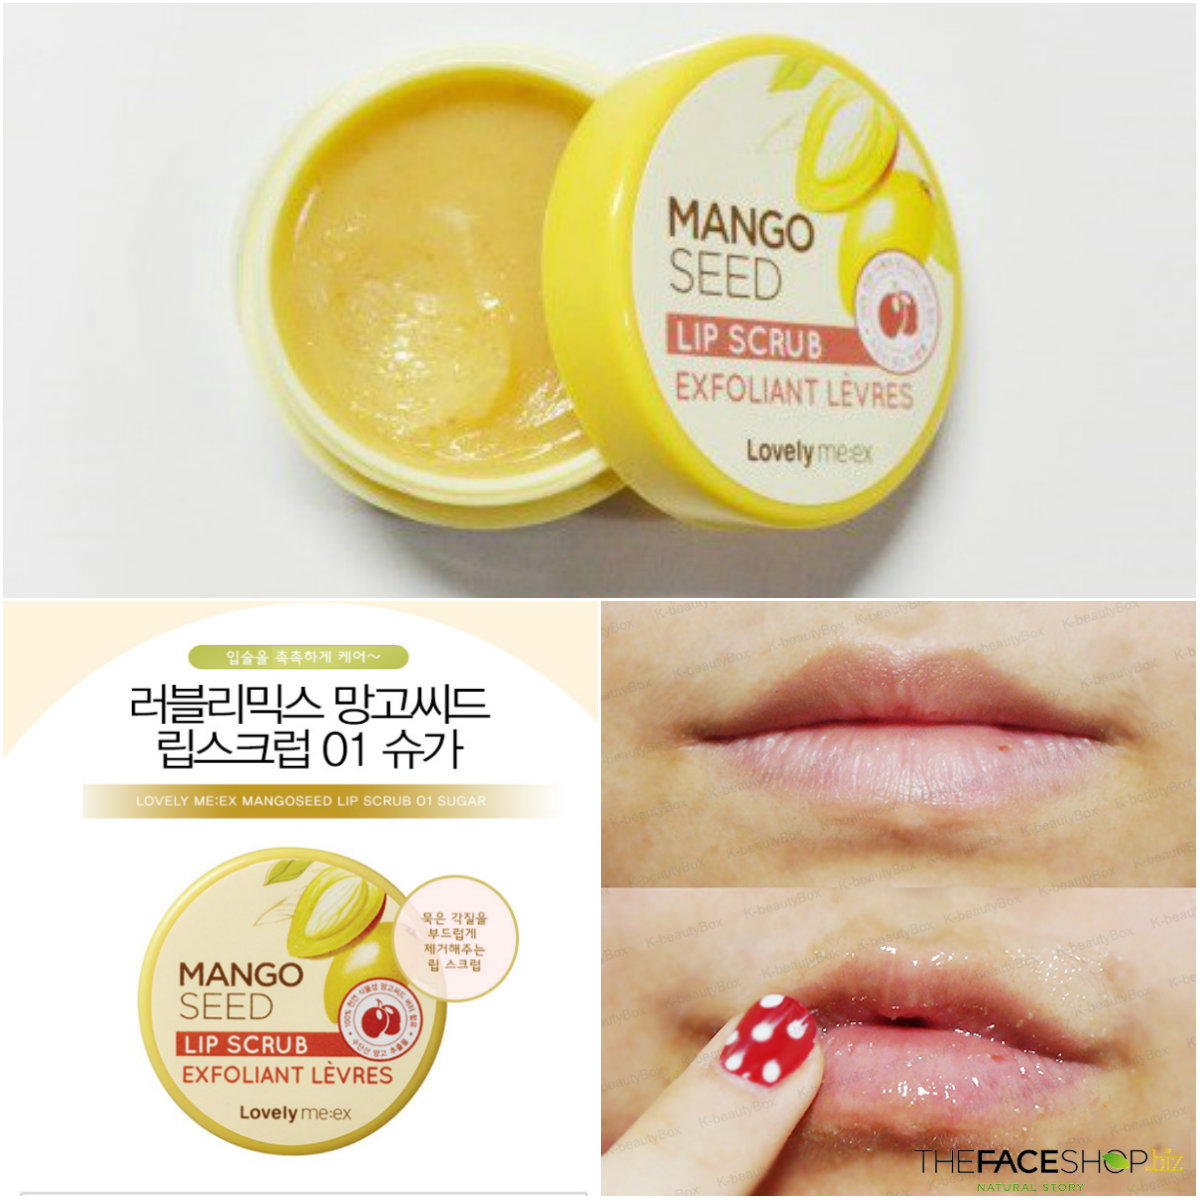 [The Face Shop] Lovely MEEX Mango Seed Lip Scrub 12g